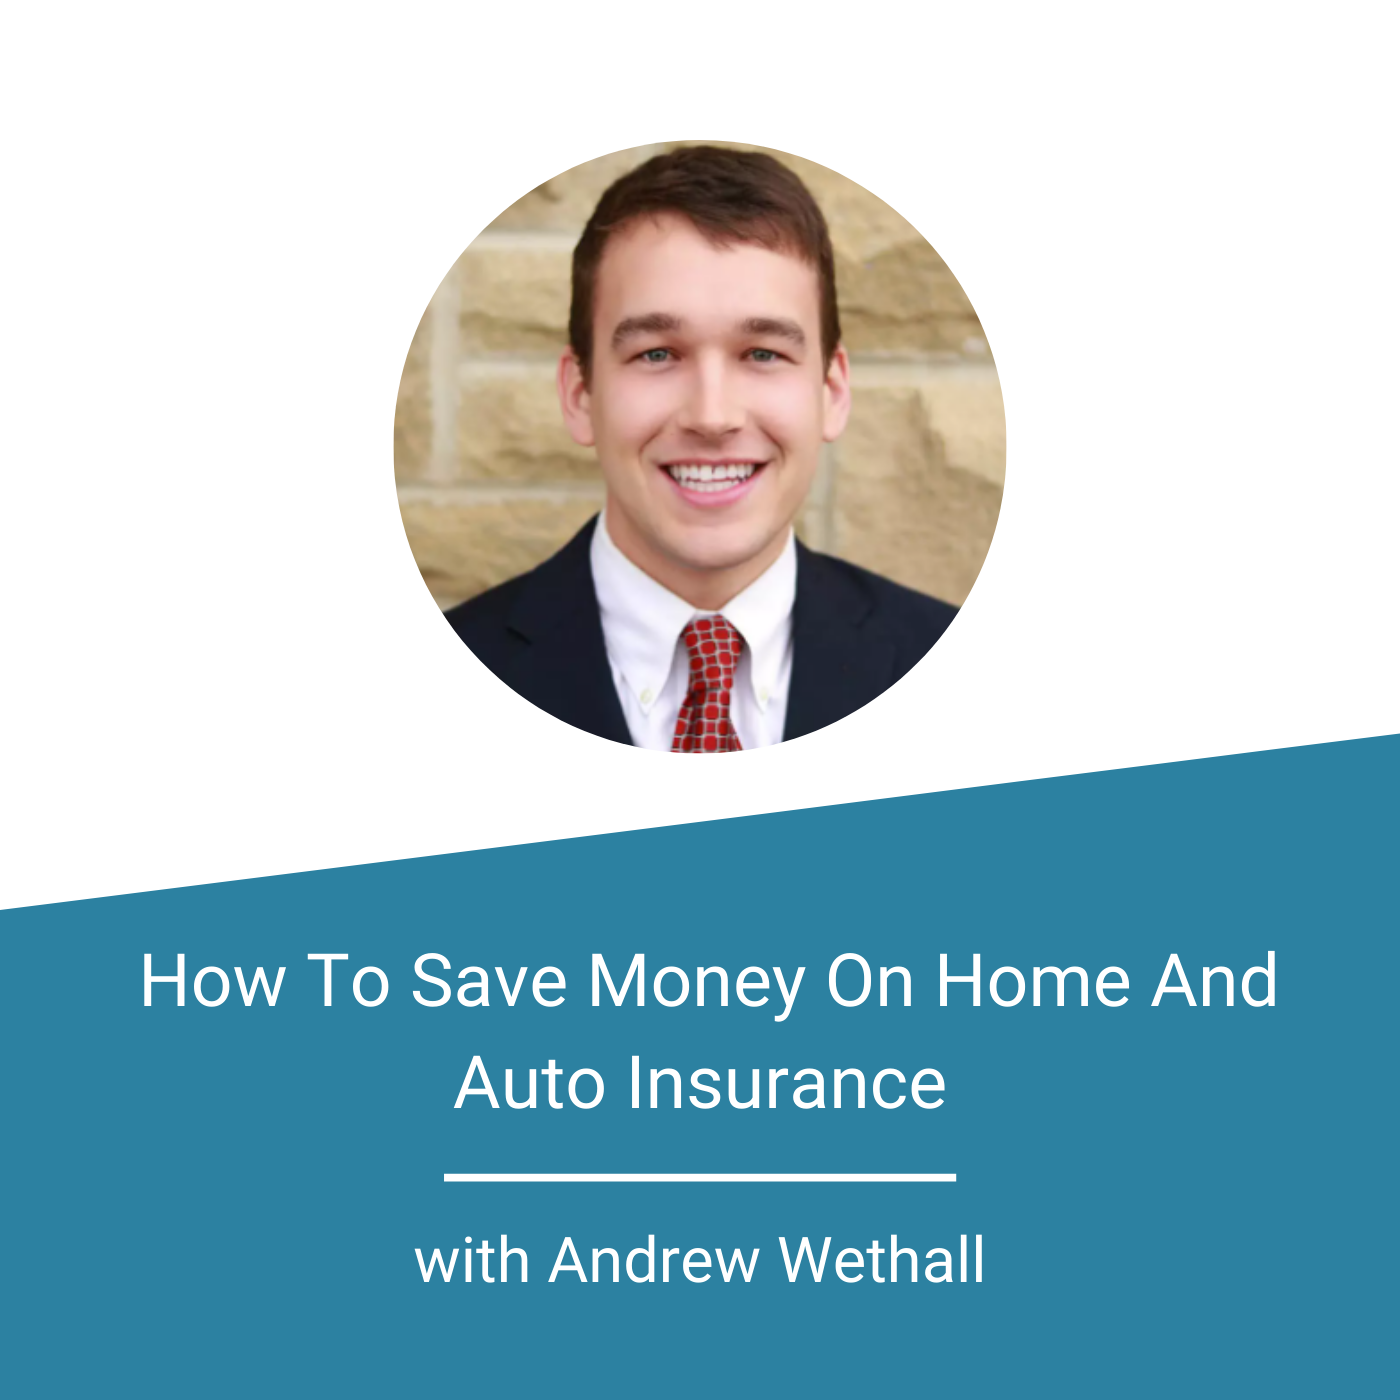 Featured Image - Andrew Wethall ( How To Save Money On Home And Auto Insurance)